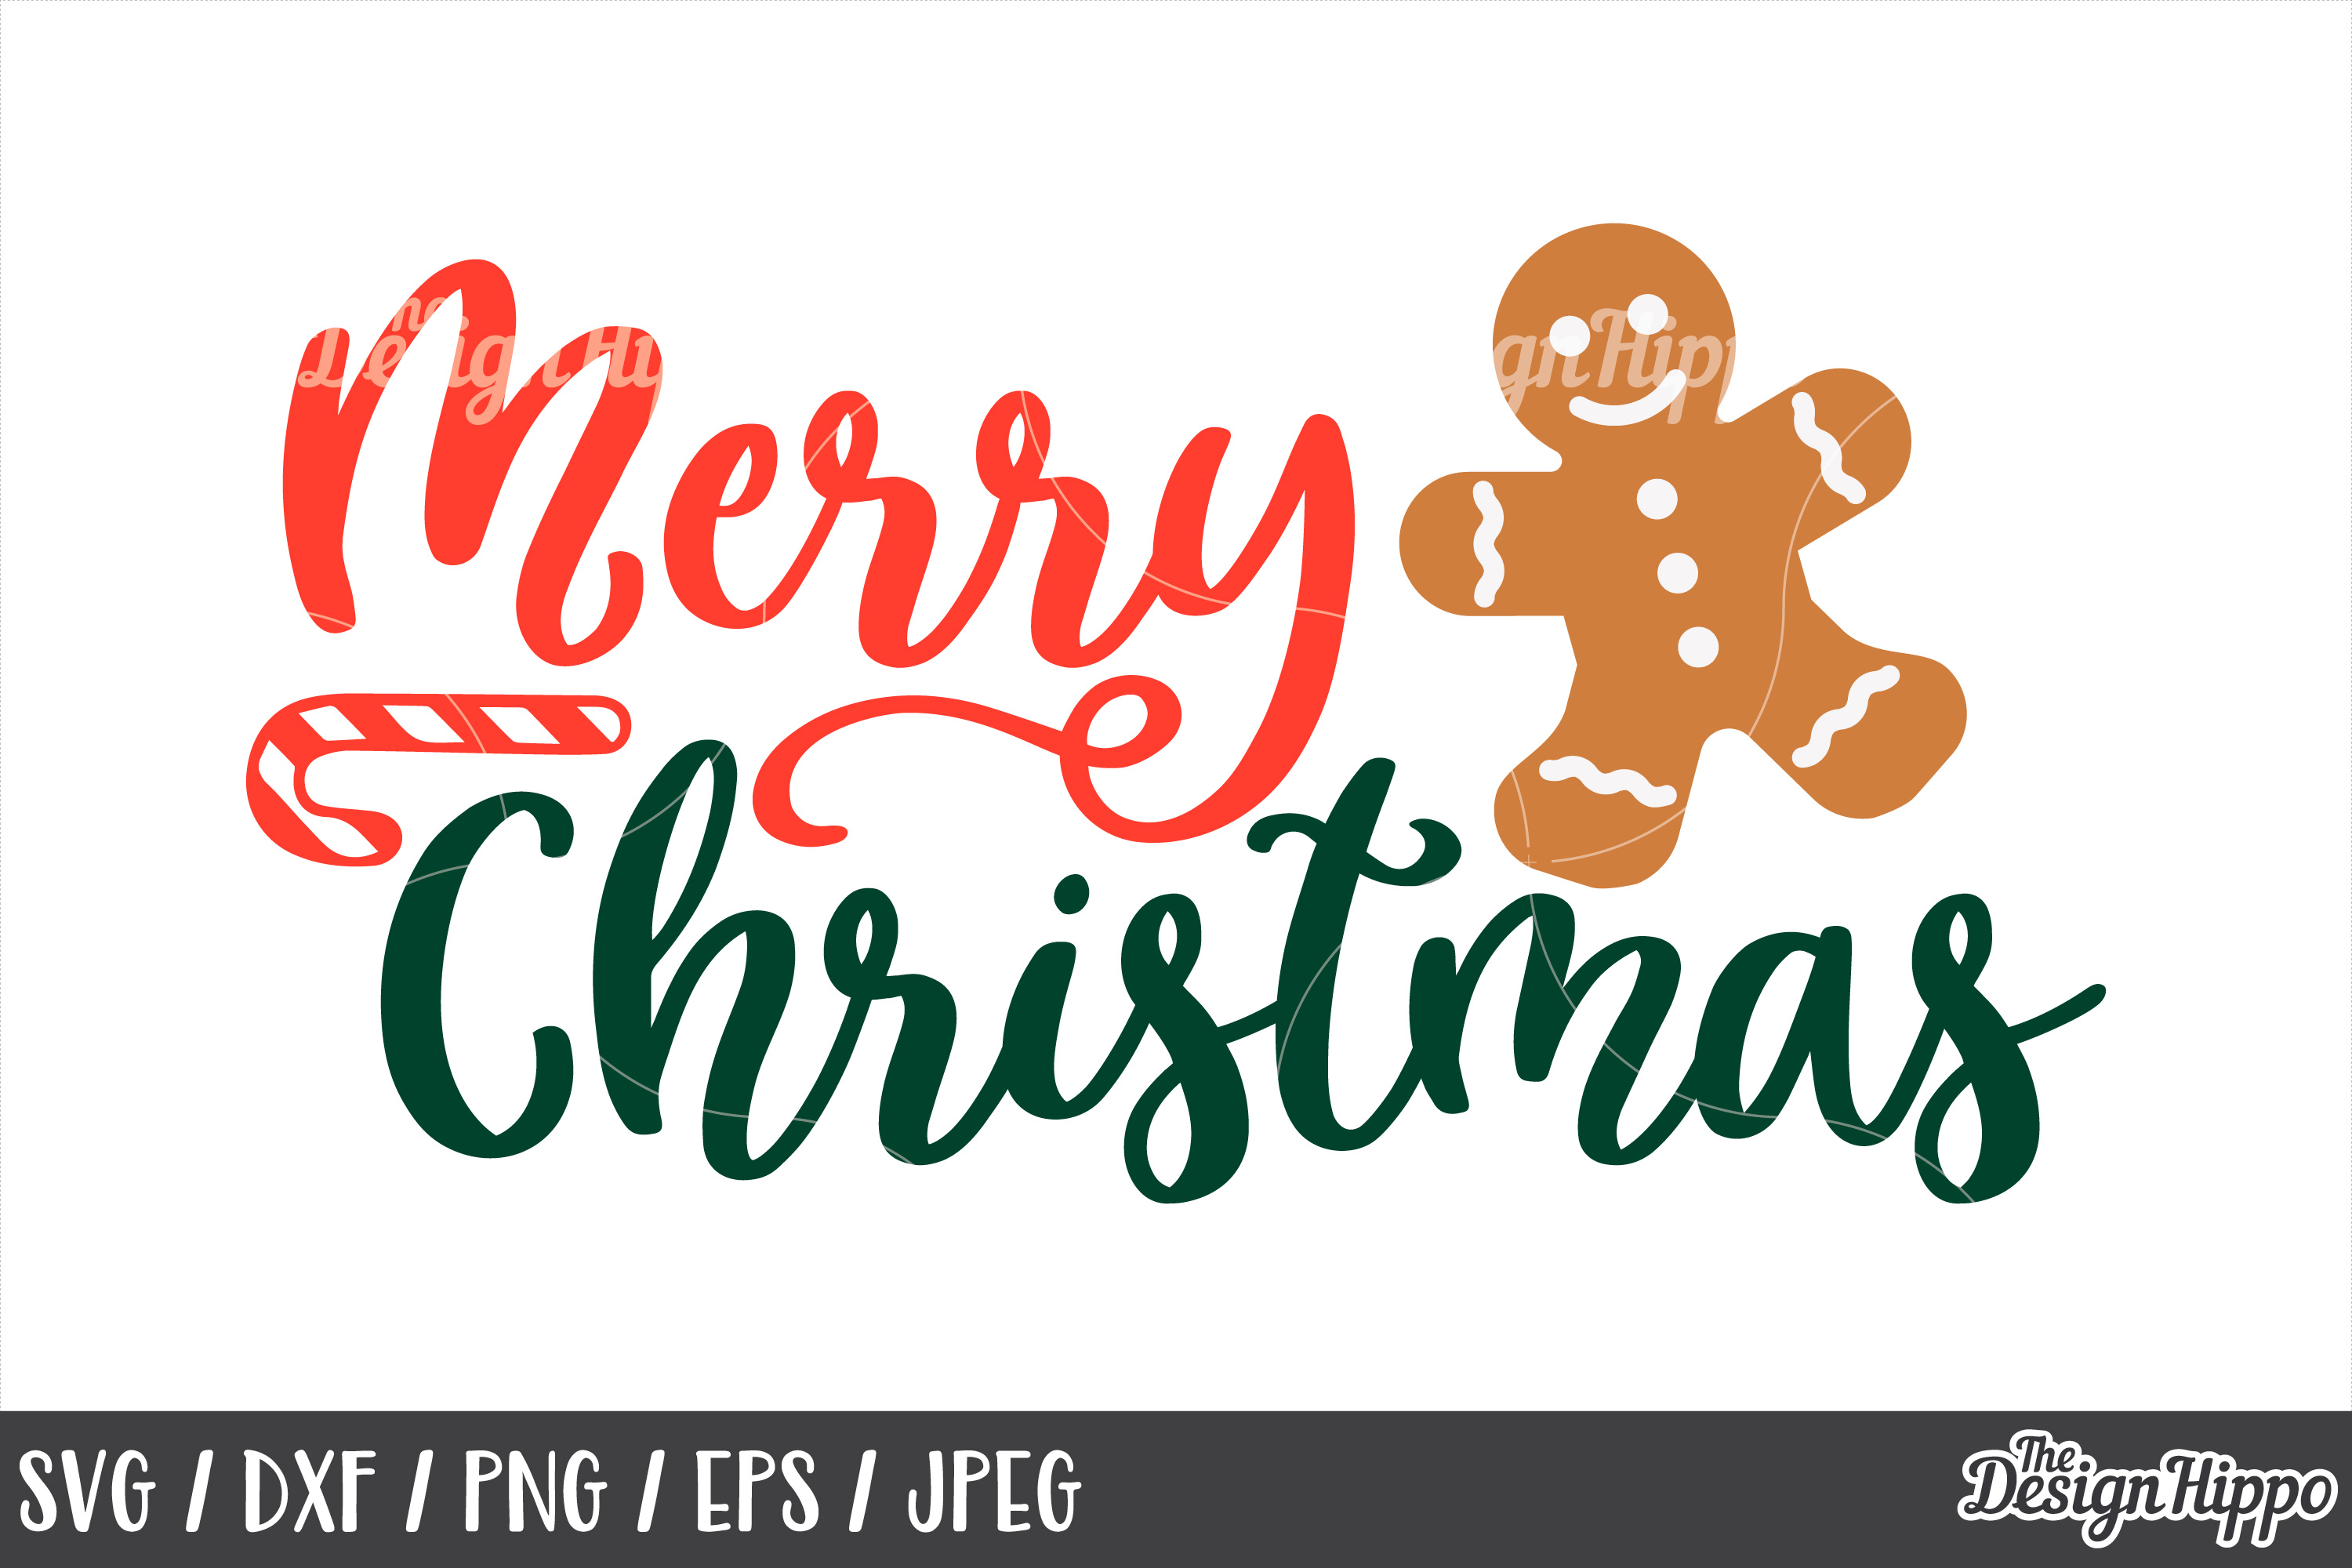 Merry Christmas SVG Bundle, Christmas SVG, PNG, DXF Cut File example image 4